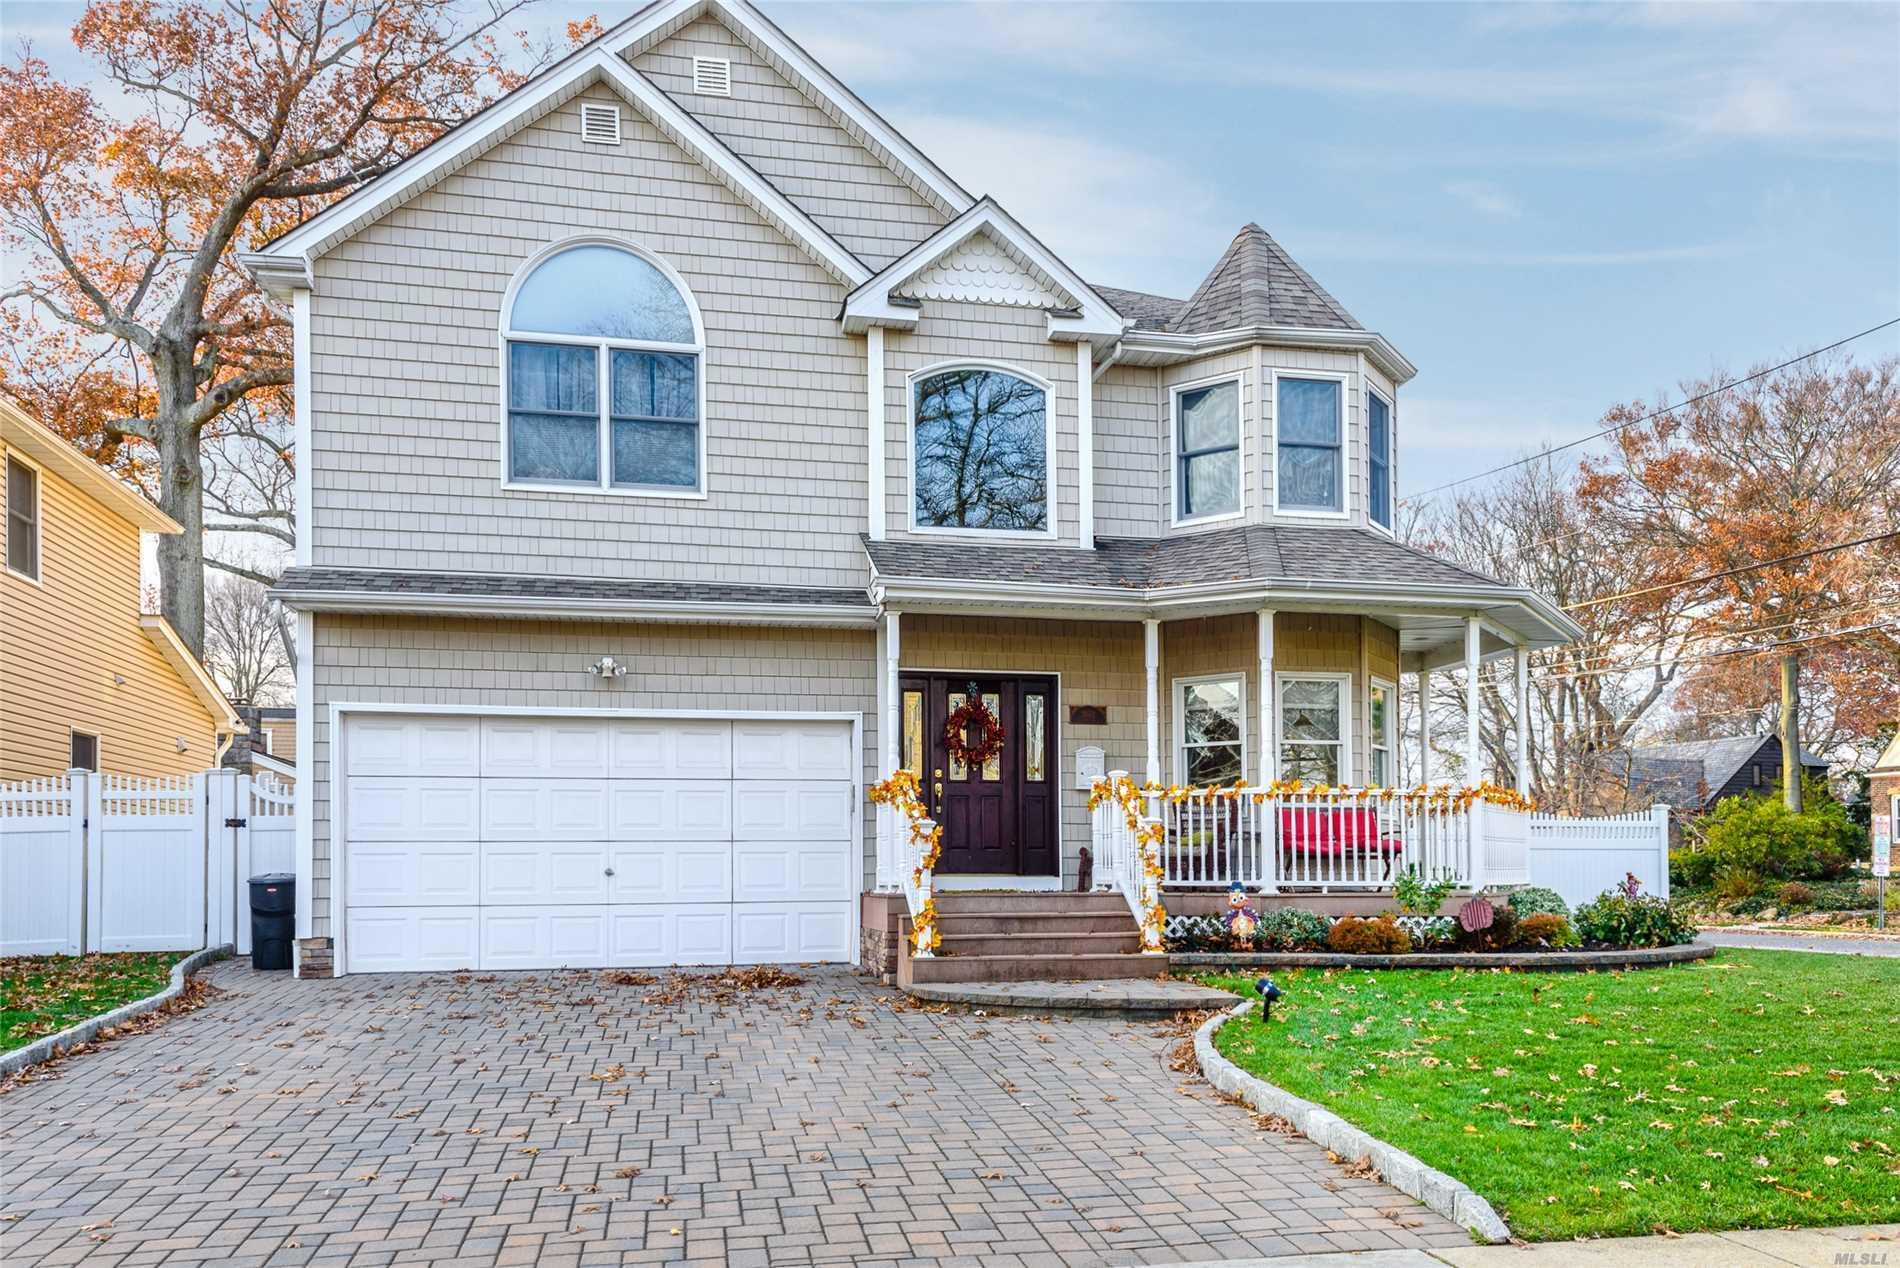 Wantagh.Young Colonial, 2 Story Entrance, Eik W/ Center Island, Stainless Steel Appliances. Bay Windows, Den W/ Fireplace. 4 Large Bed Rooms, 2 Full Baths. Many Closets. Large Property, Great Location, 2 Blocks From Train, Near Parkways, Shopping, Restaurants. Great For Entertaining And Relaxing.